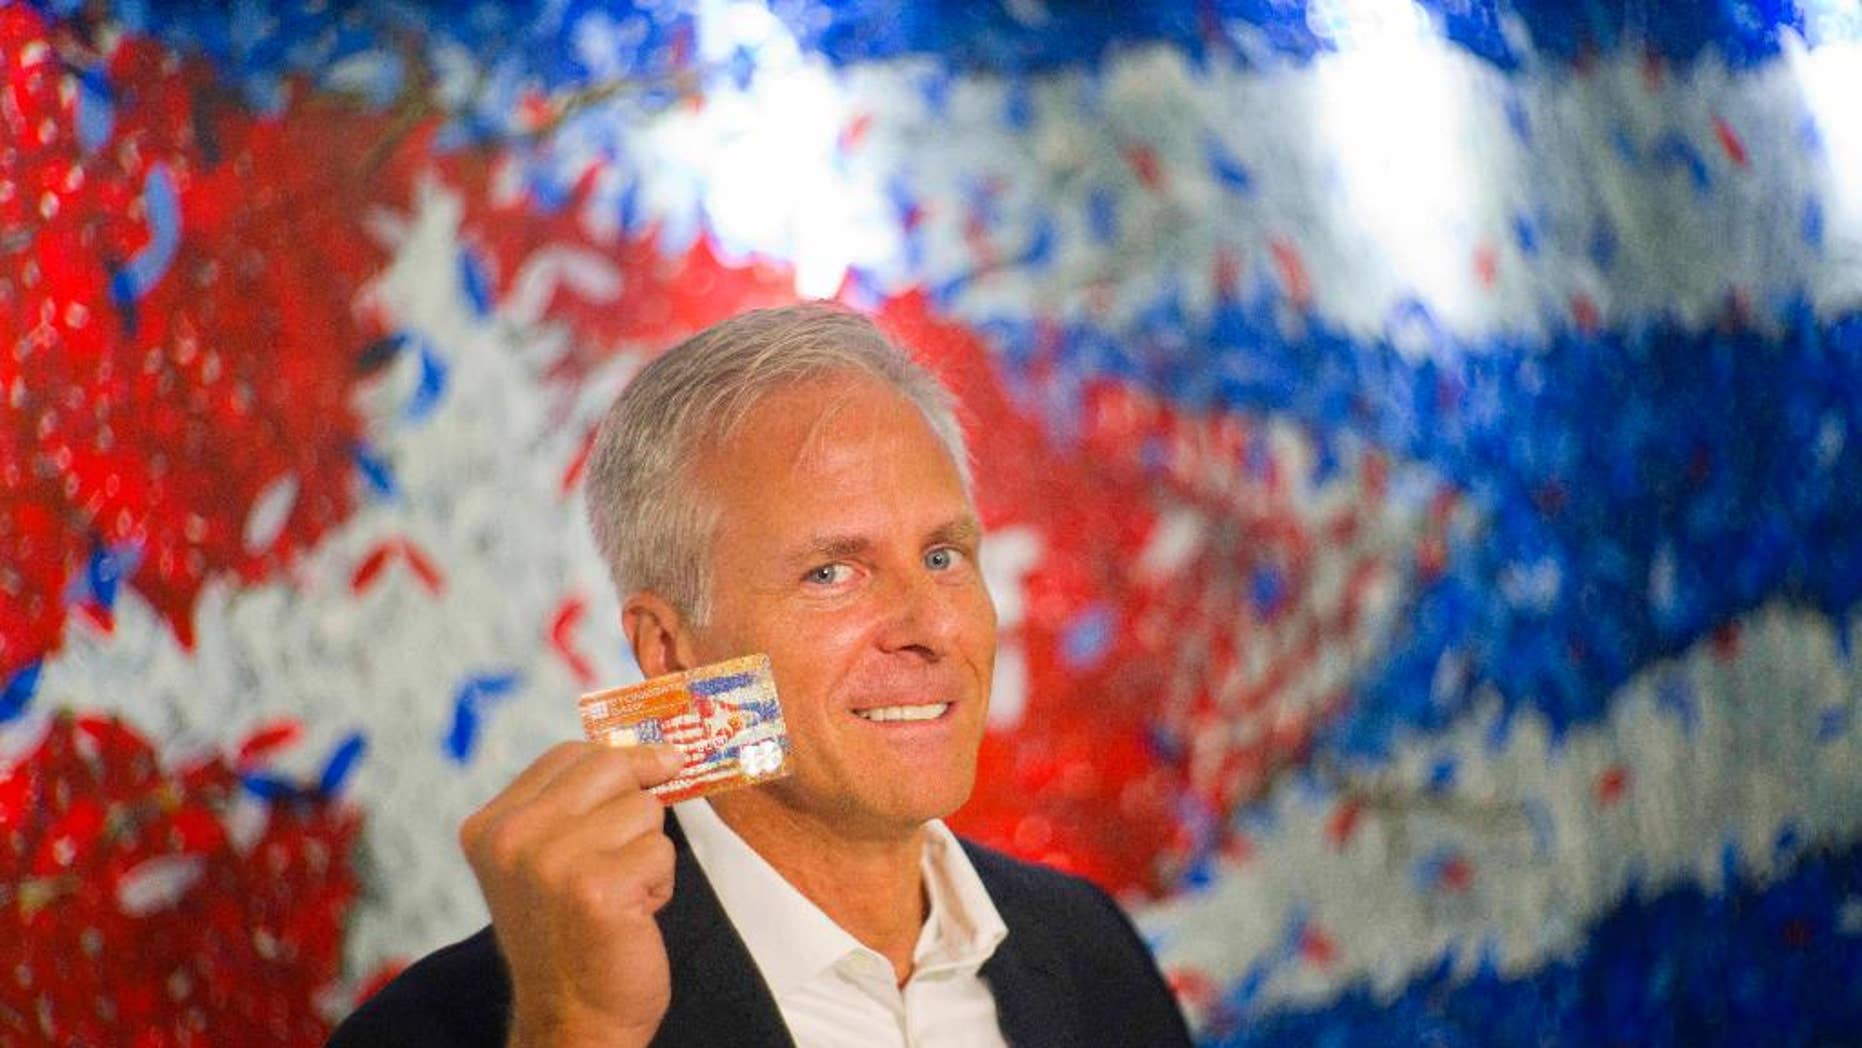 In this June 8, 2016 photo, Stonegate Bank President David Seleski poses with a credit card during an interview in Havana, Cuba.  Stonegate, a small Florida bank, will issue the first U.S. credit card designed to work in Cuba on Wednesday, June 15, making it easier for American companies to do business on an island largely cut off from the U.S. financial system. (AP Photo/Ramon Espinosa)